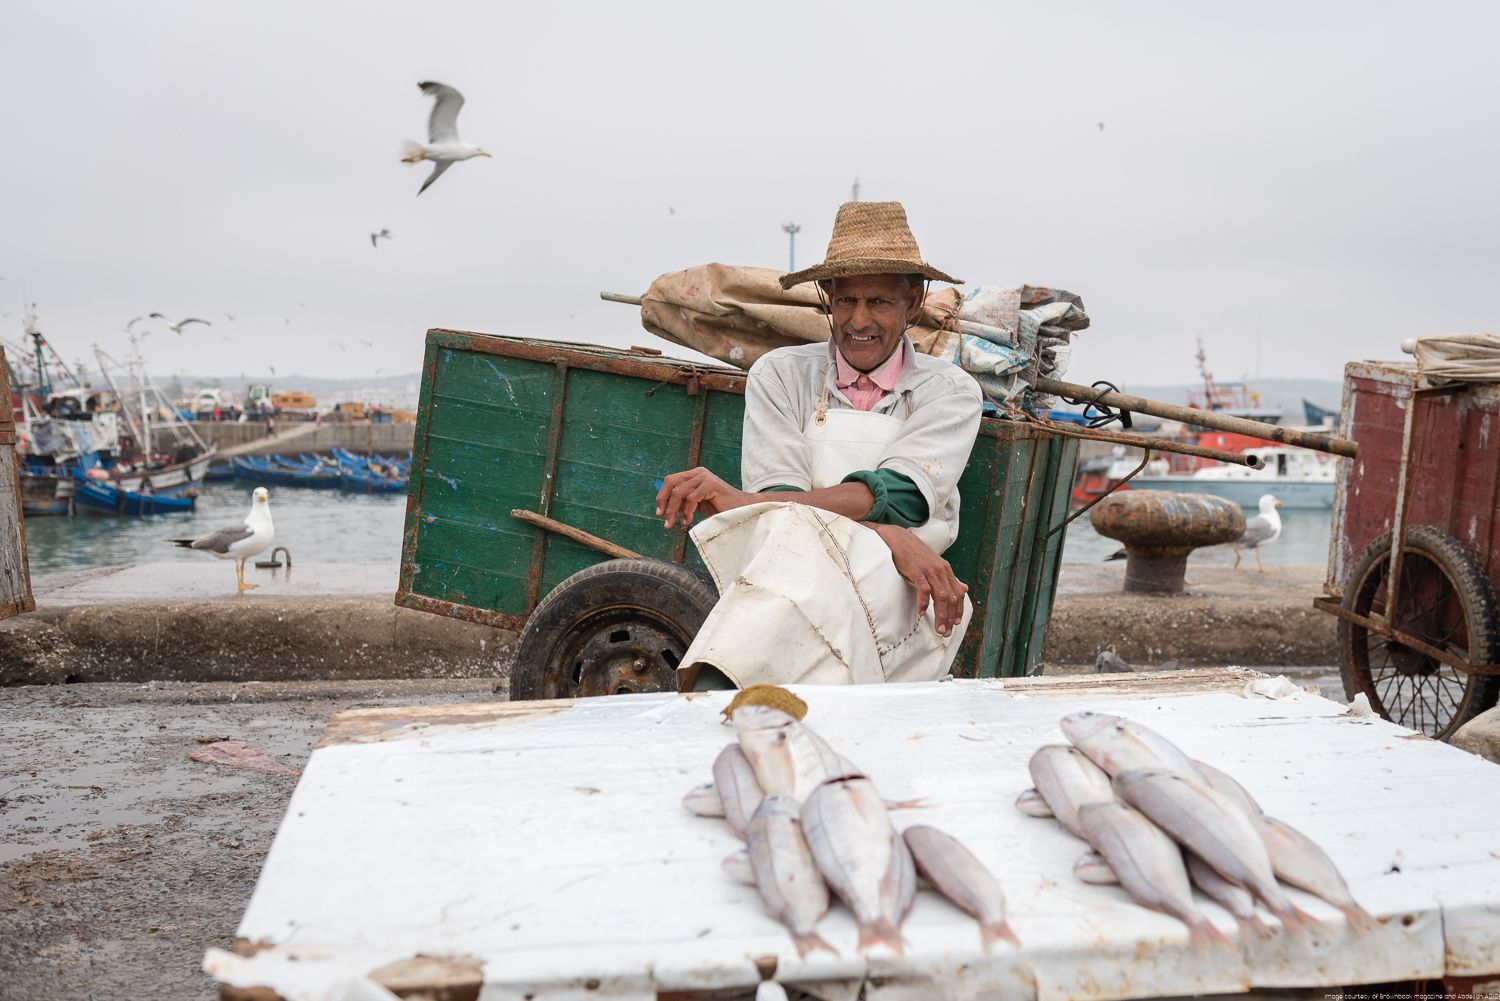 Fish seller in Essaouira port - Essaouira reportage